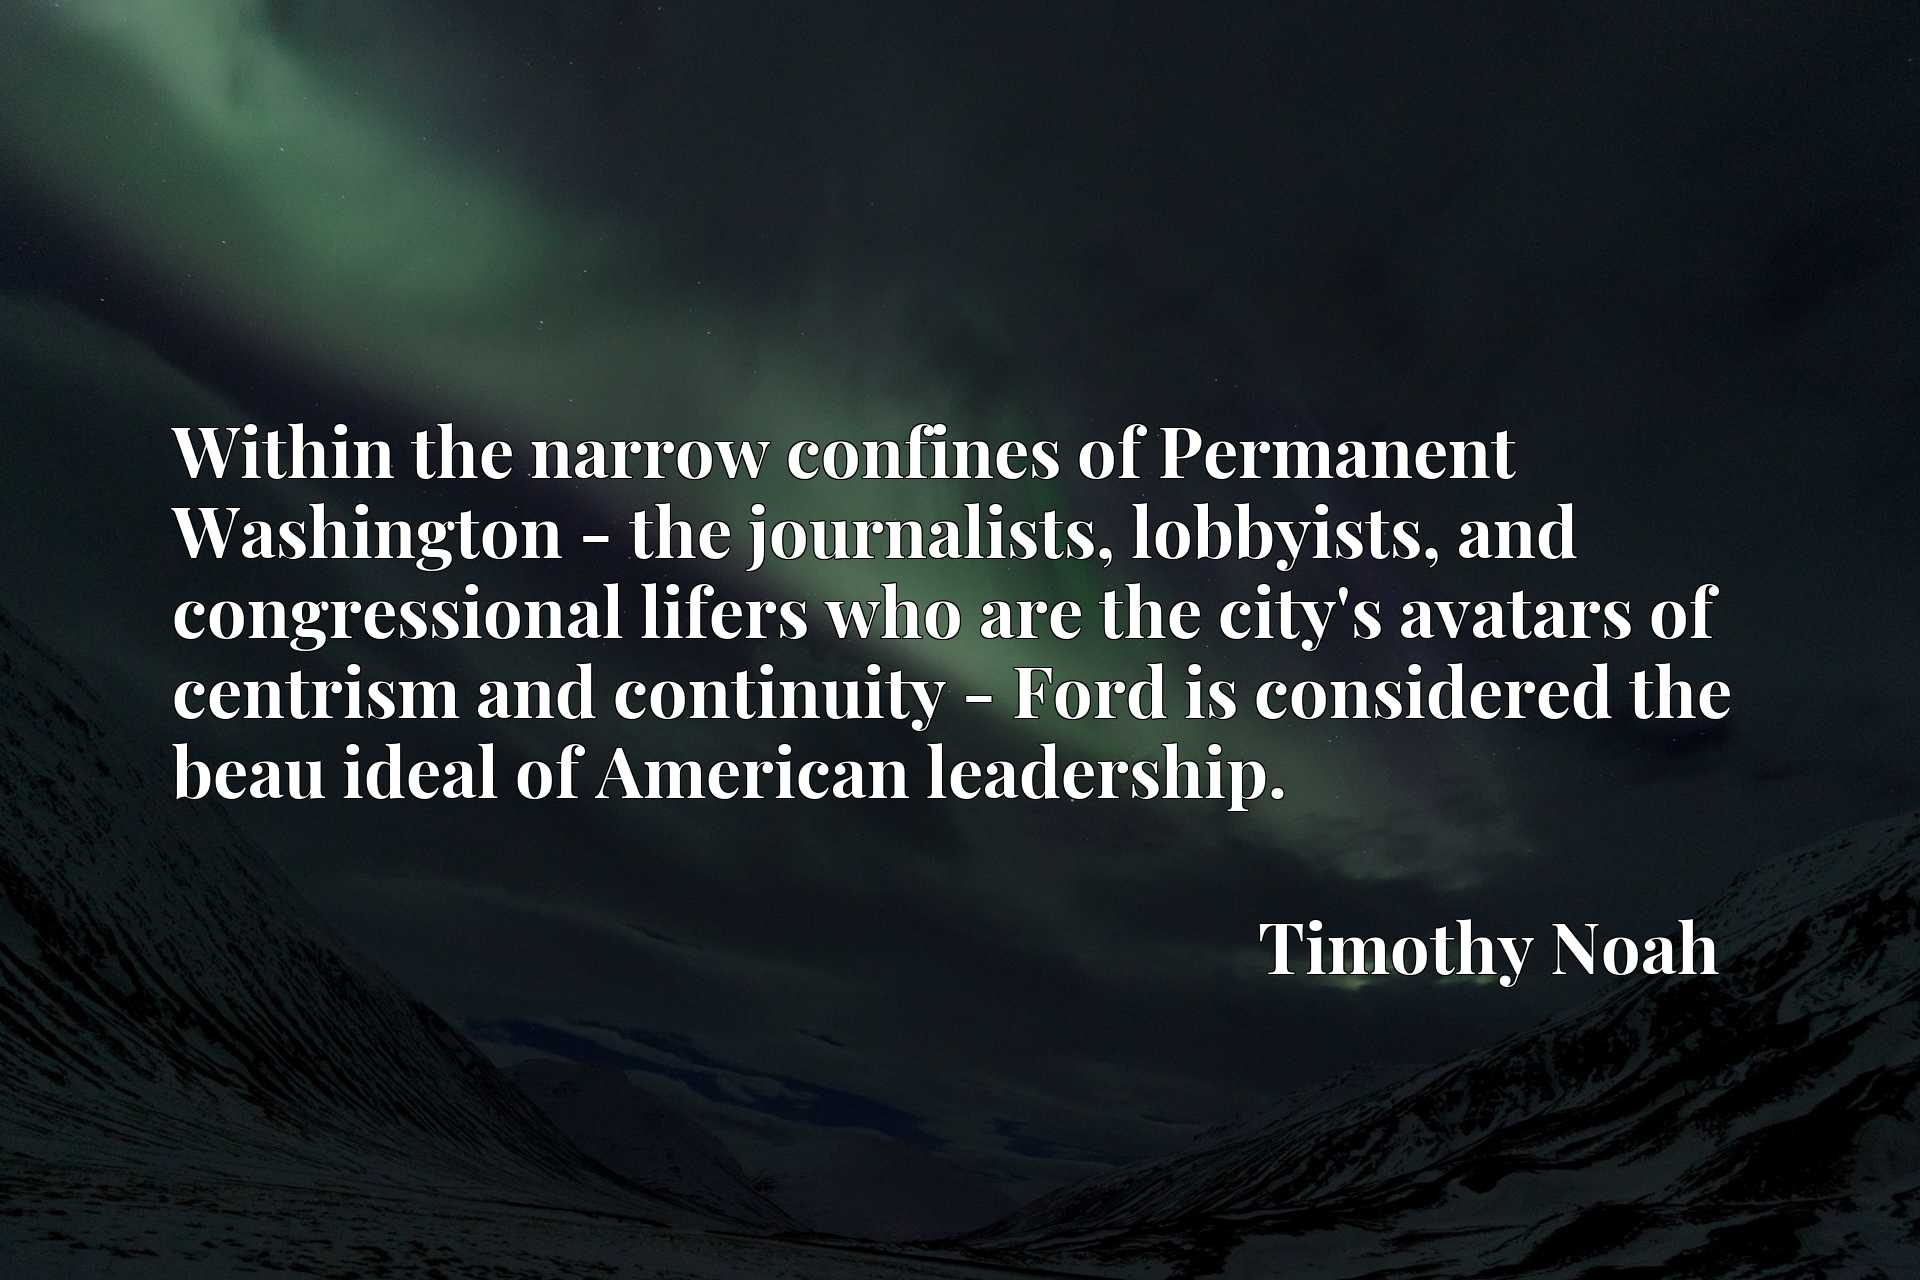 Quote Picture :Within the narrow confines of Permanent Washington - the journalists, lobbyists, and congressional lifers who are the city's avatars of centrism and continuity - Ford is considered the beau ideal of American leadership.